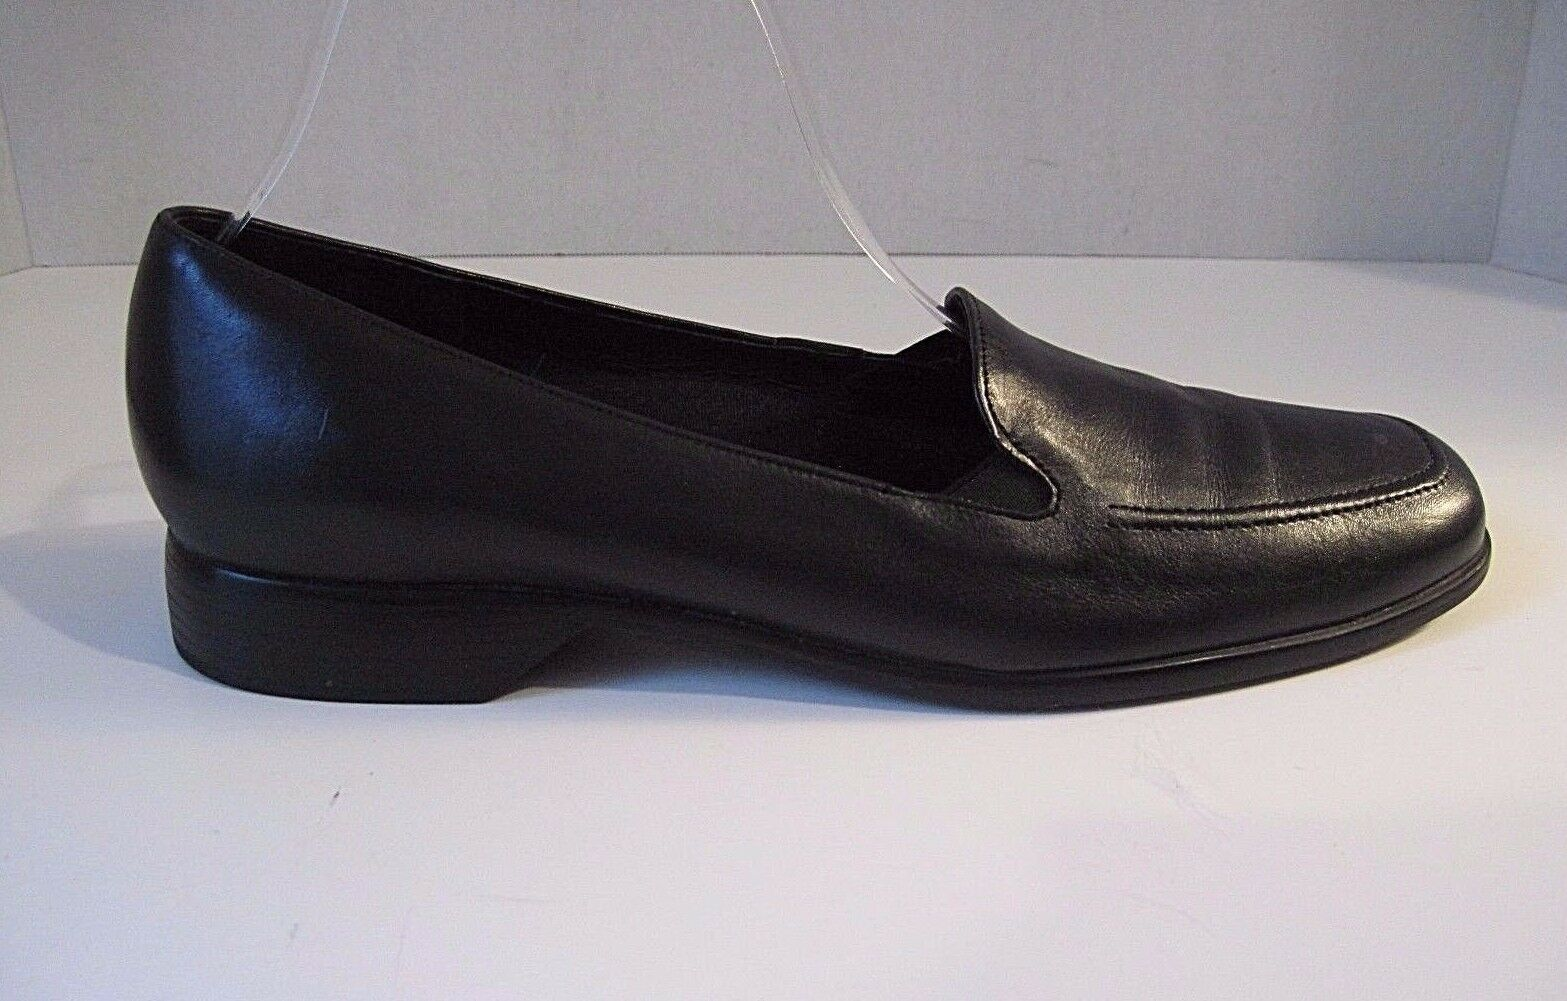 Munro Black Leather Slip On Loafers, shoes Size 9 1 2 SS